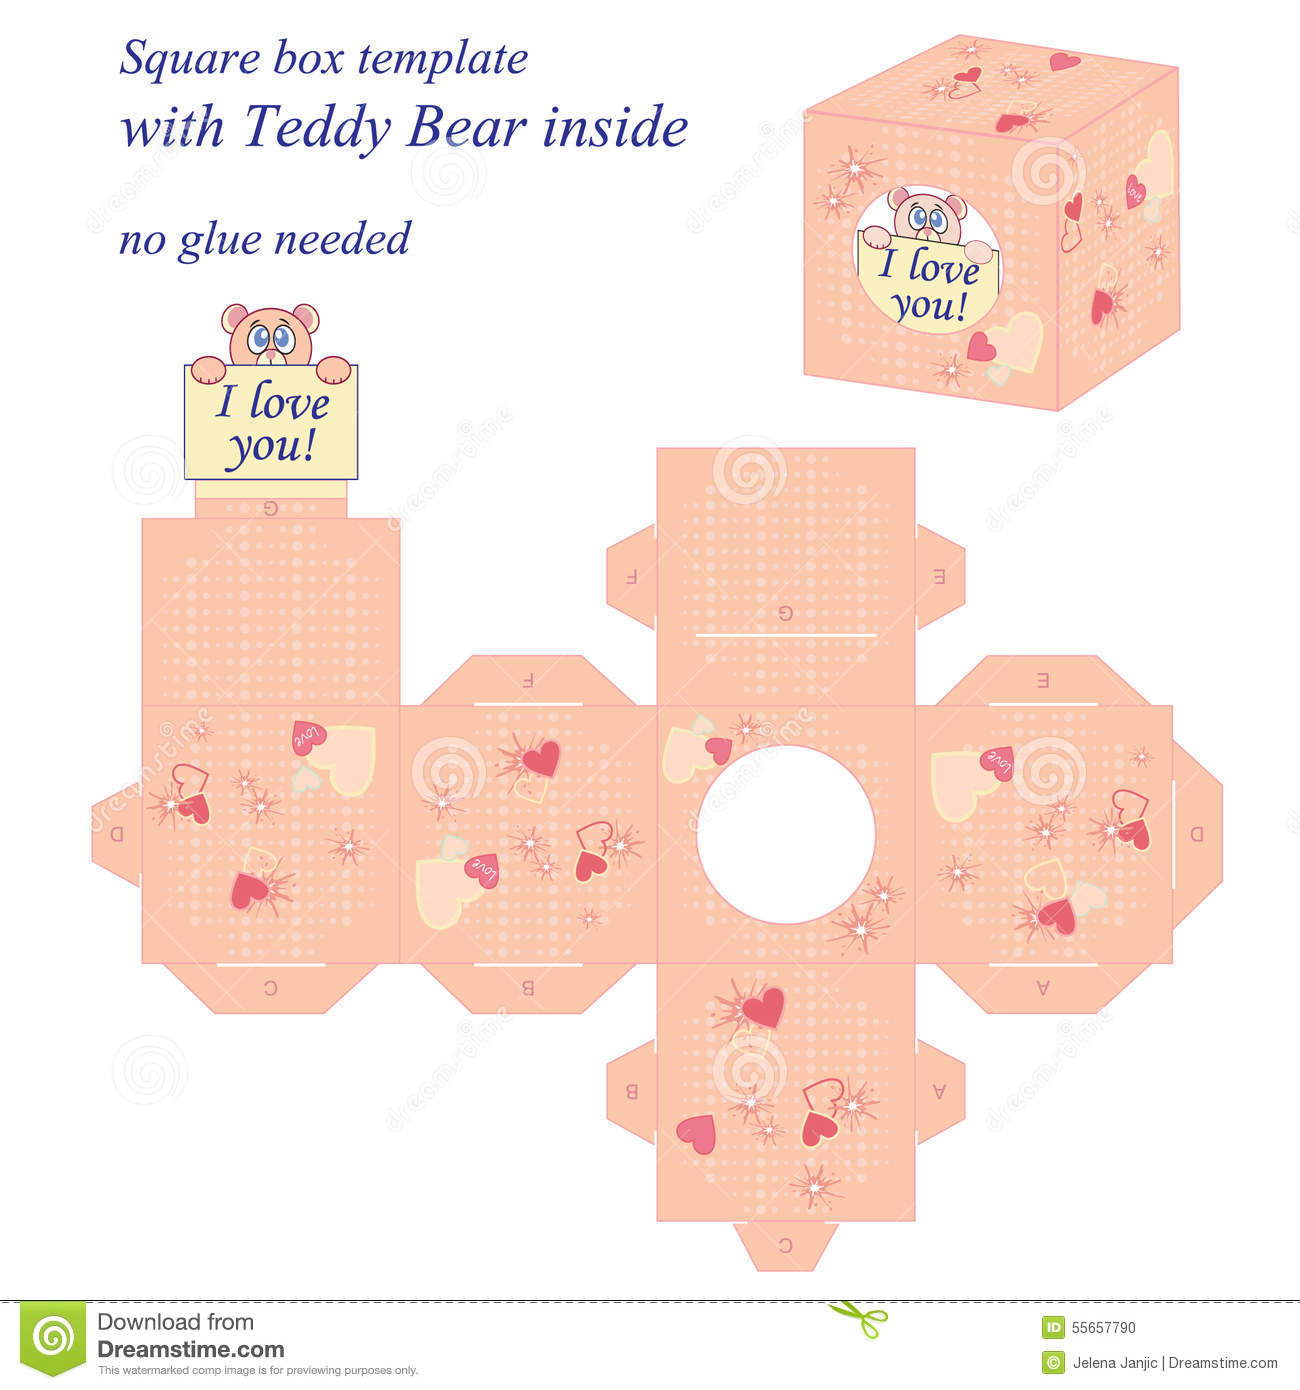 Interesting square box template with cute teddy bear inside holding interesting square box template with cute teddy bear inside holding note i love you maxwellsz